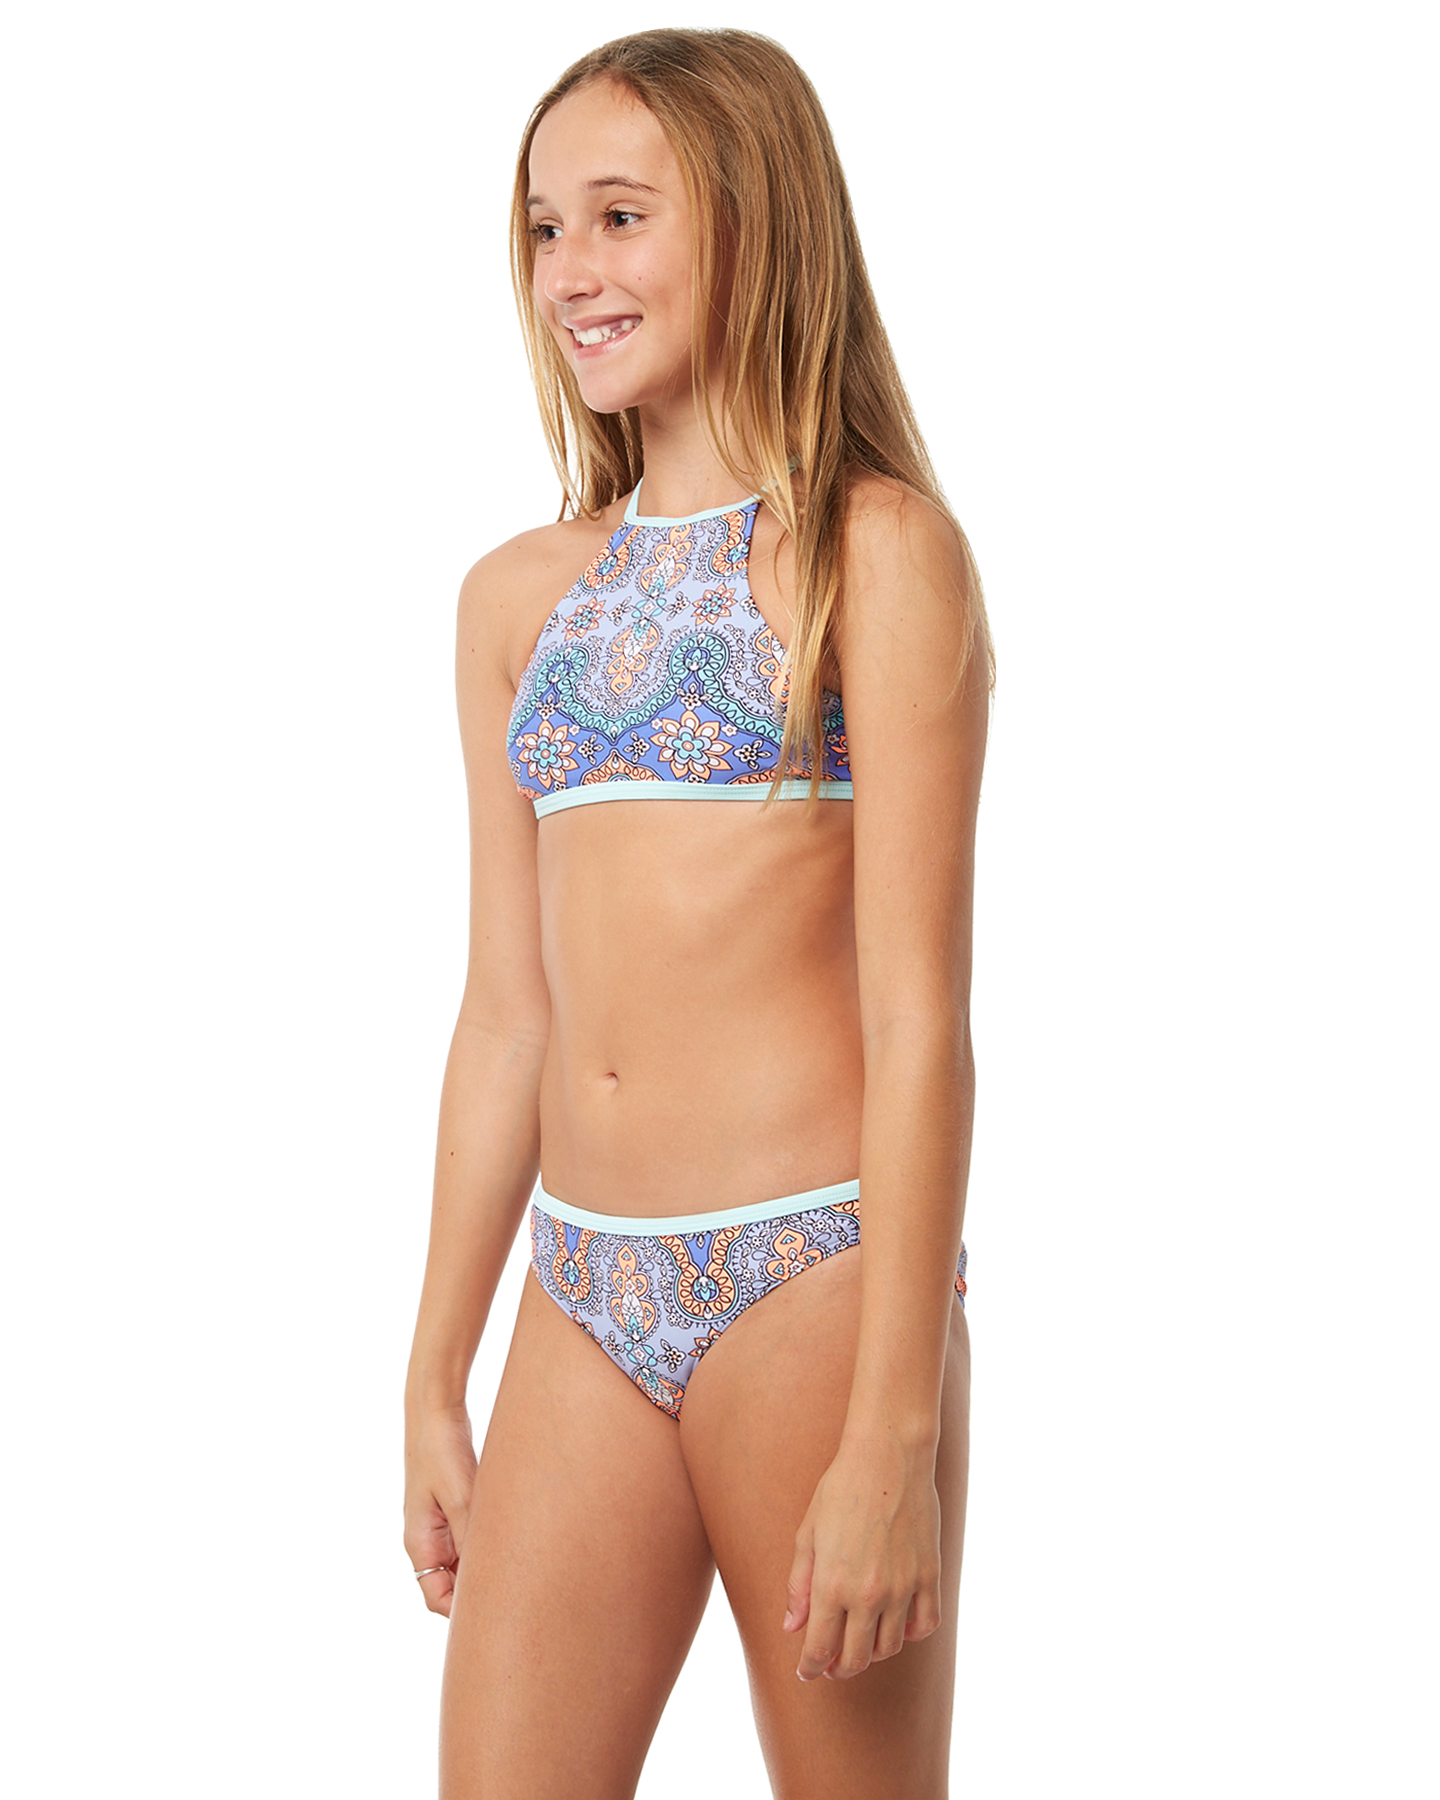 a0c7f56696 Rip Curl Girls Mystic Sun High Neck Bikini - Teens - Aqua